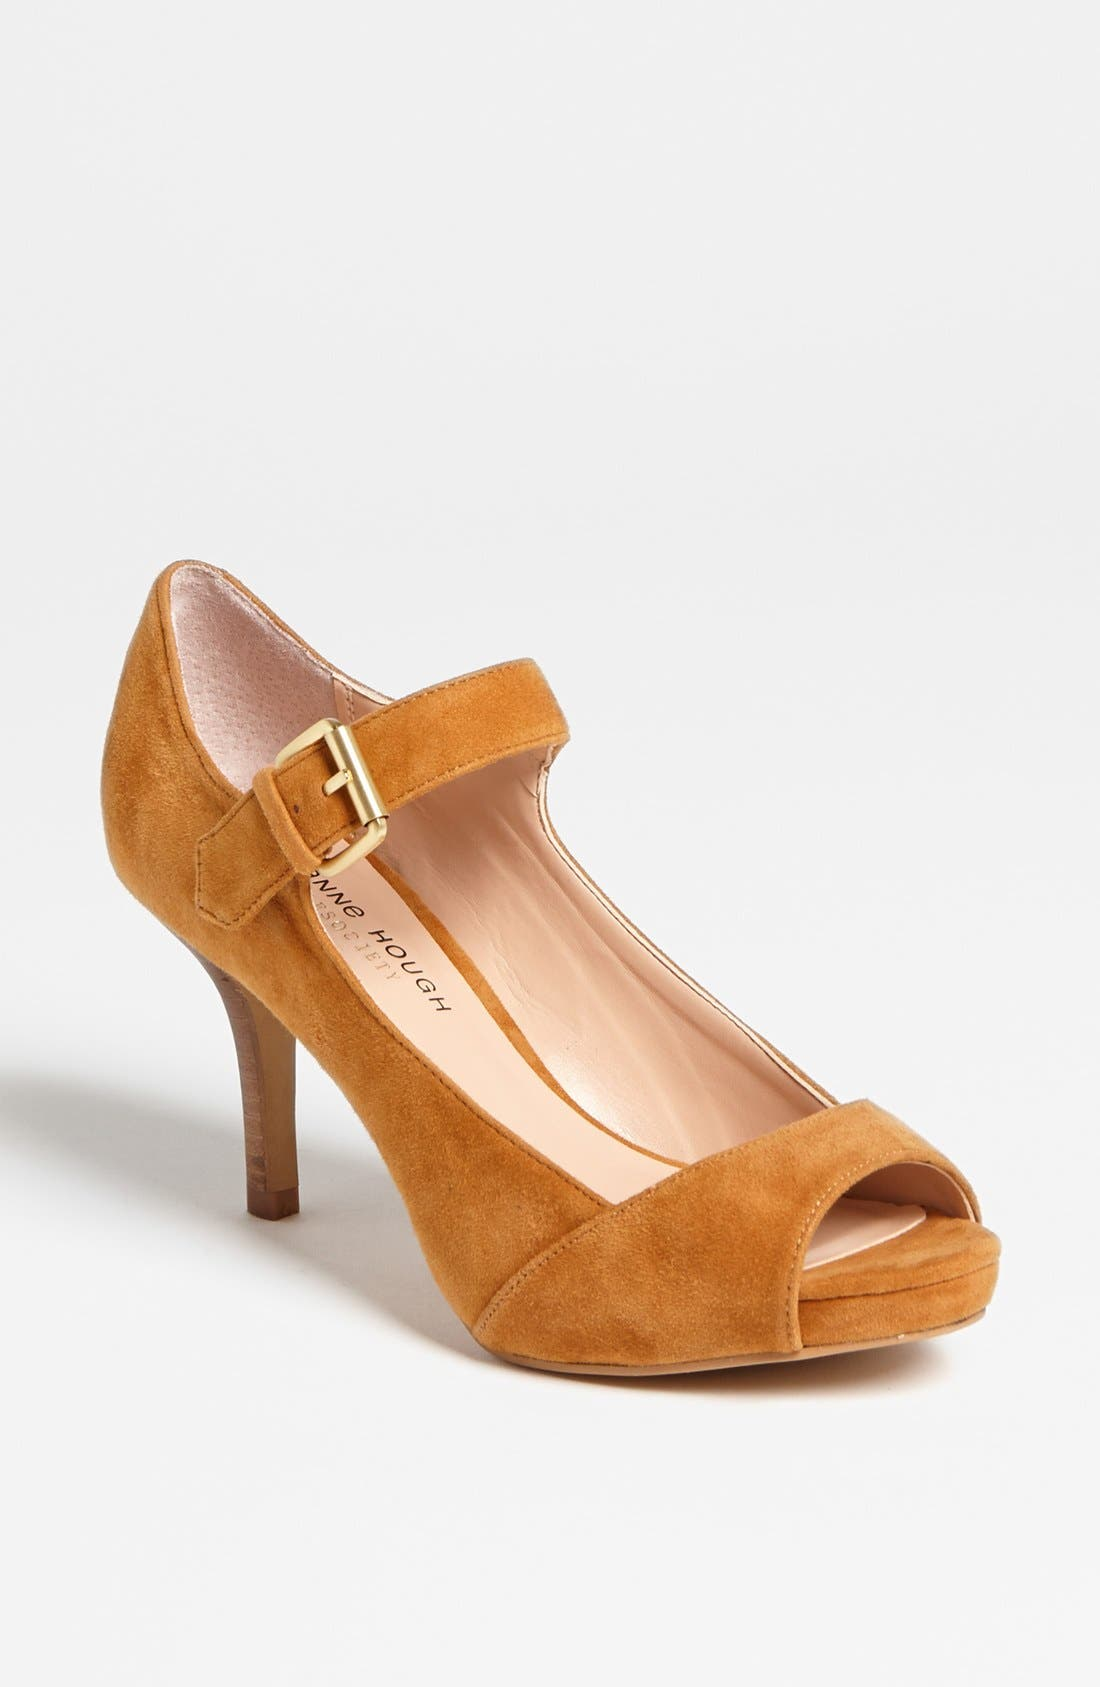 Main Image - Julianne Hough for Sole Society 'Jaylene' Pump